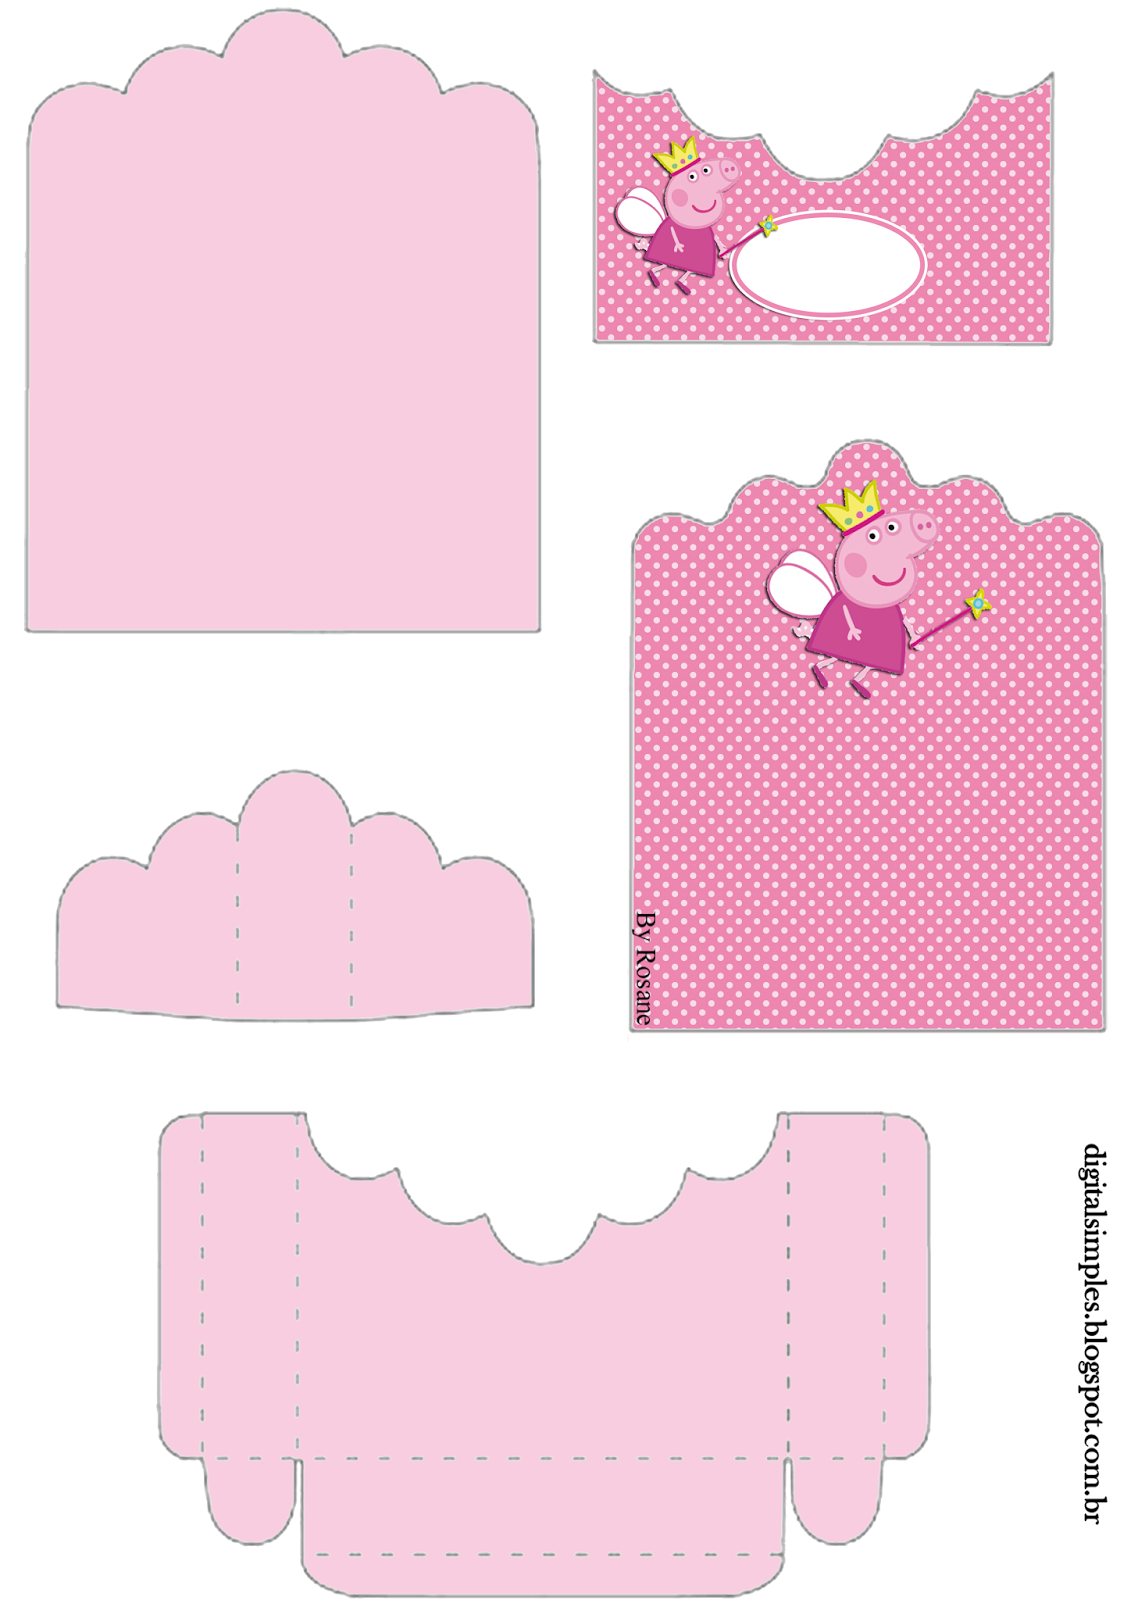 Peppa Pig Fairy: Free Printable Candy Package Supports. | Oh My Fiesta ...